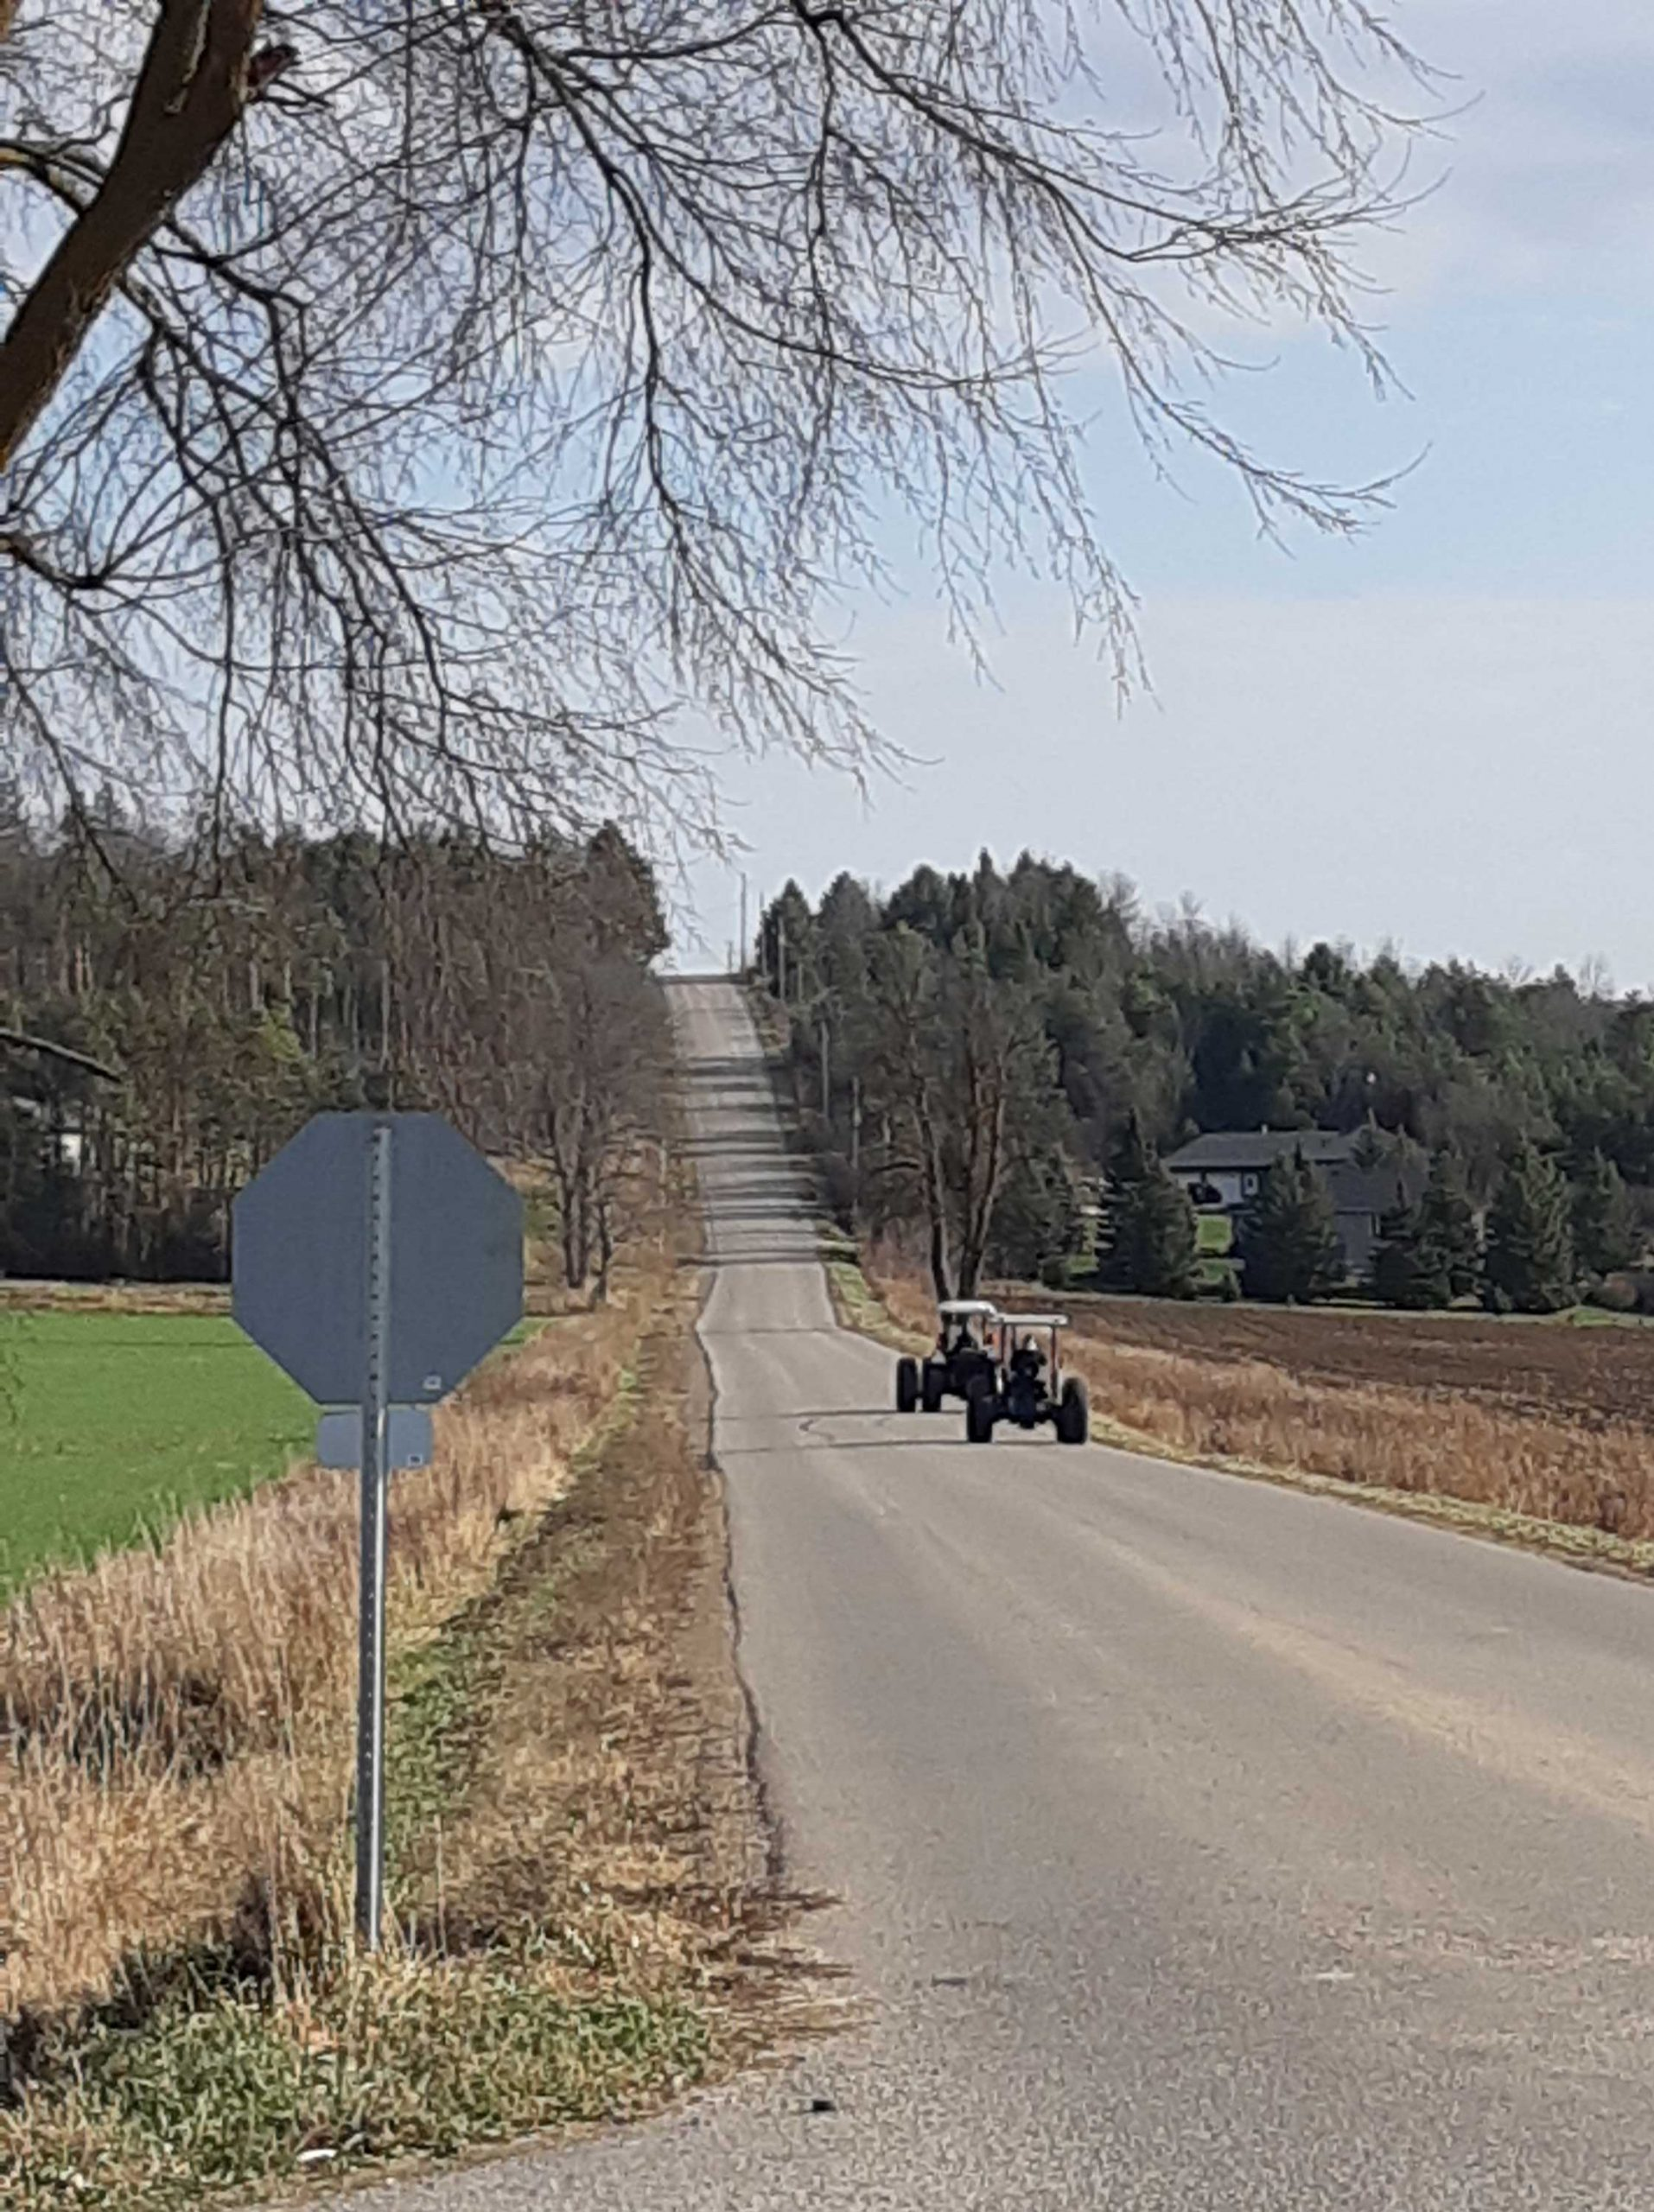 two small tractors on a country road